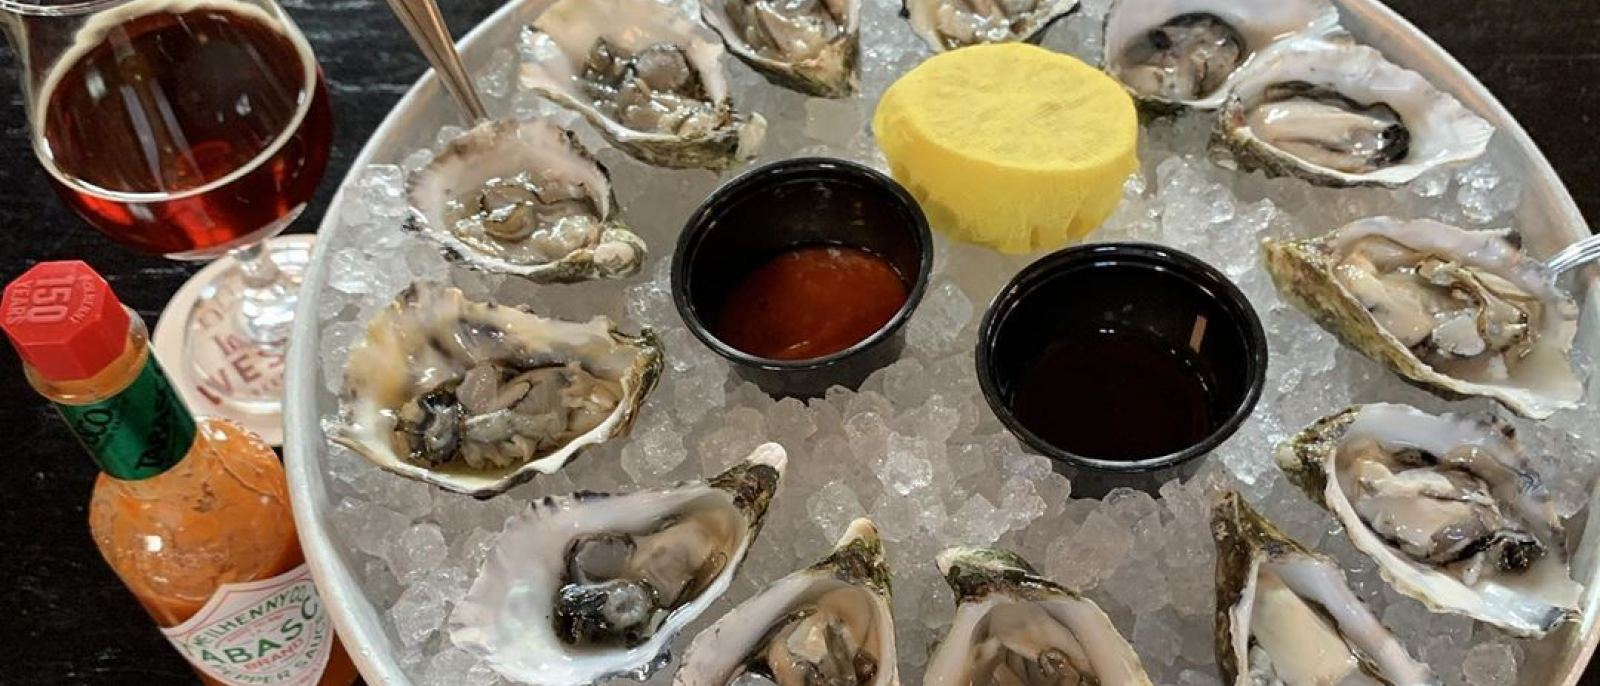 Dozen oysters at Imperial Western Beer Company in DTLA